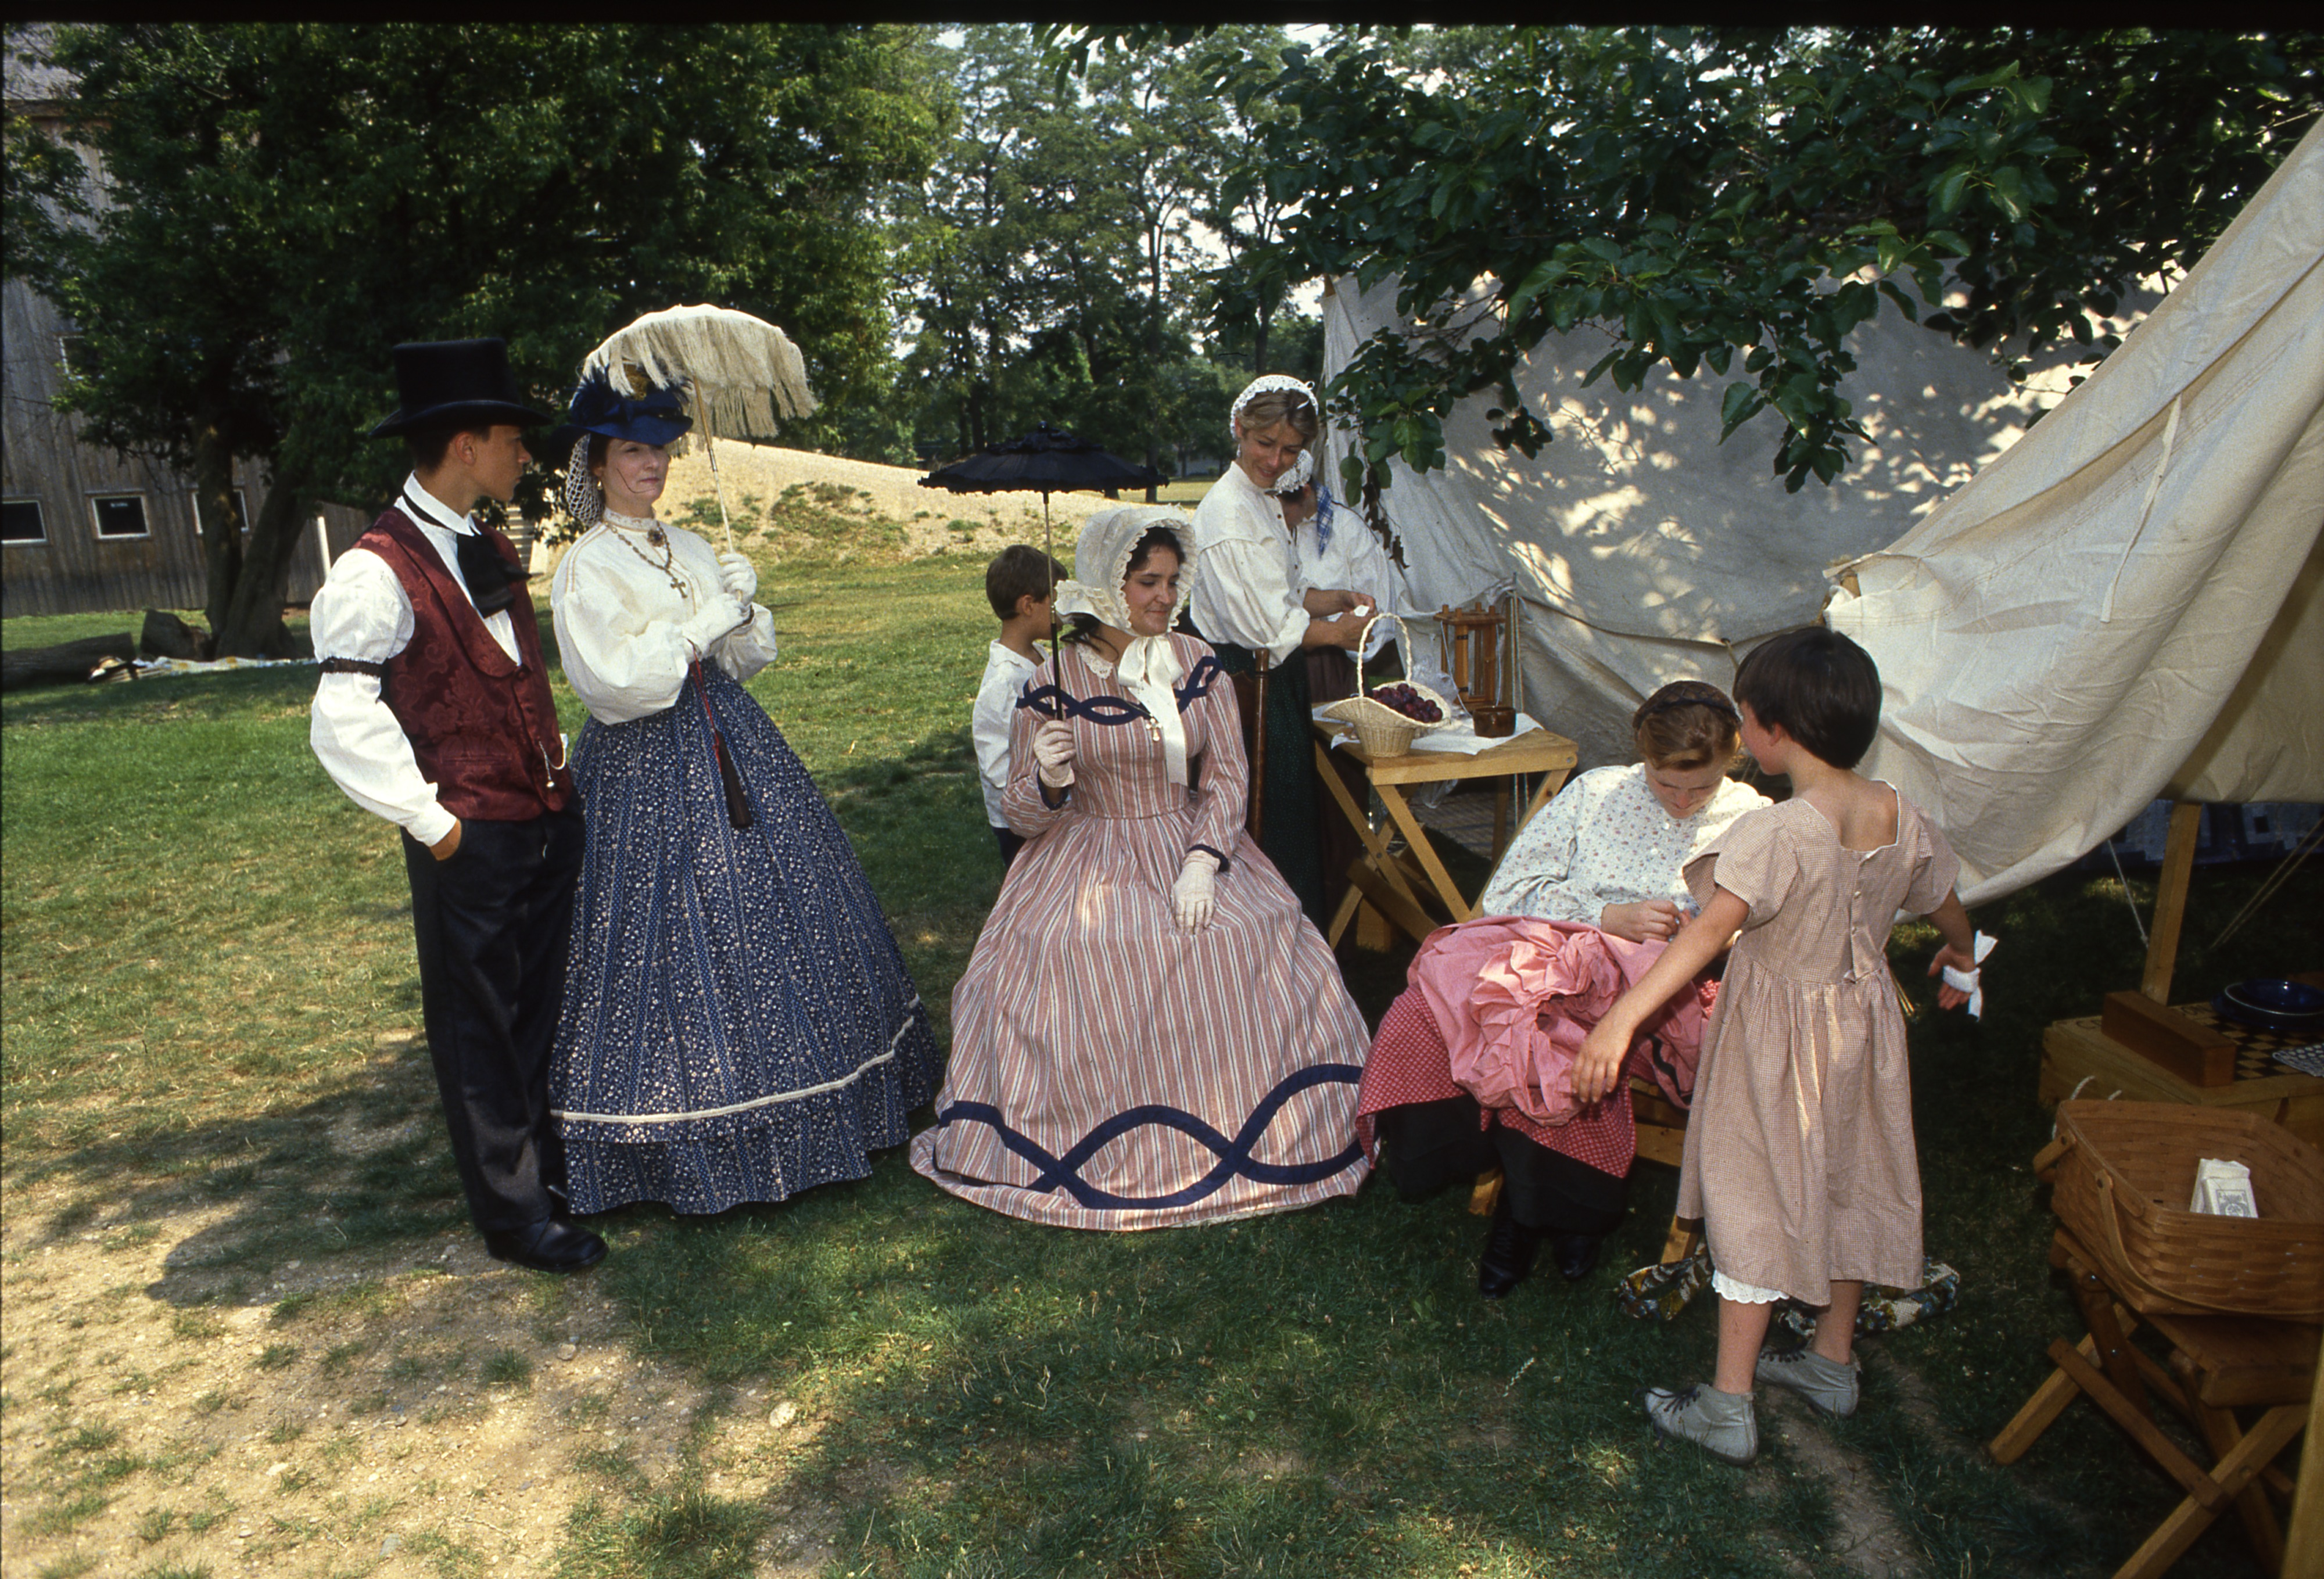 Civil War Era Re-enactment Participants At Cobblestone Farm, July 28, 1990 image